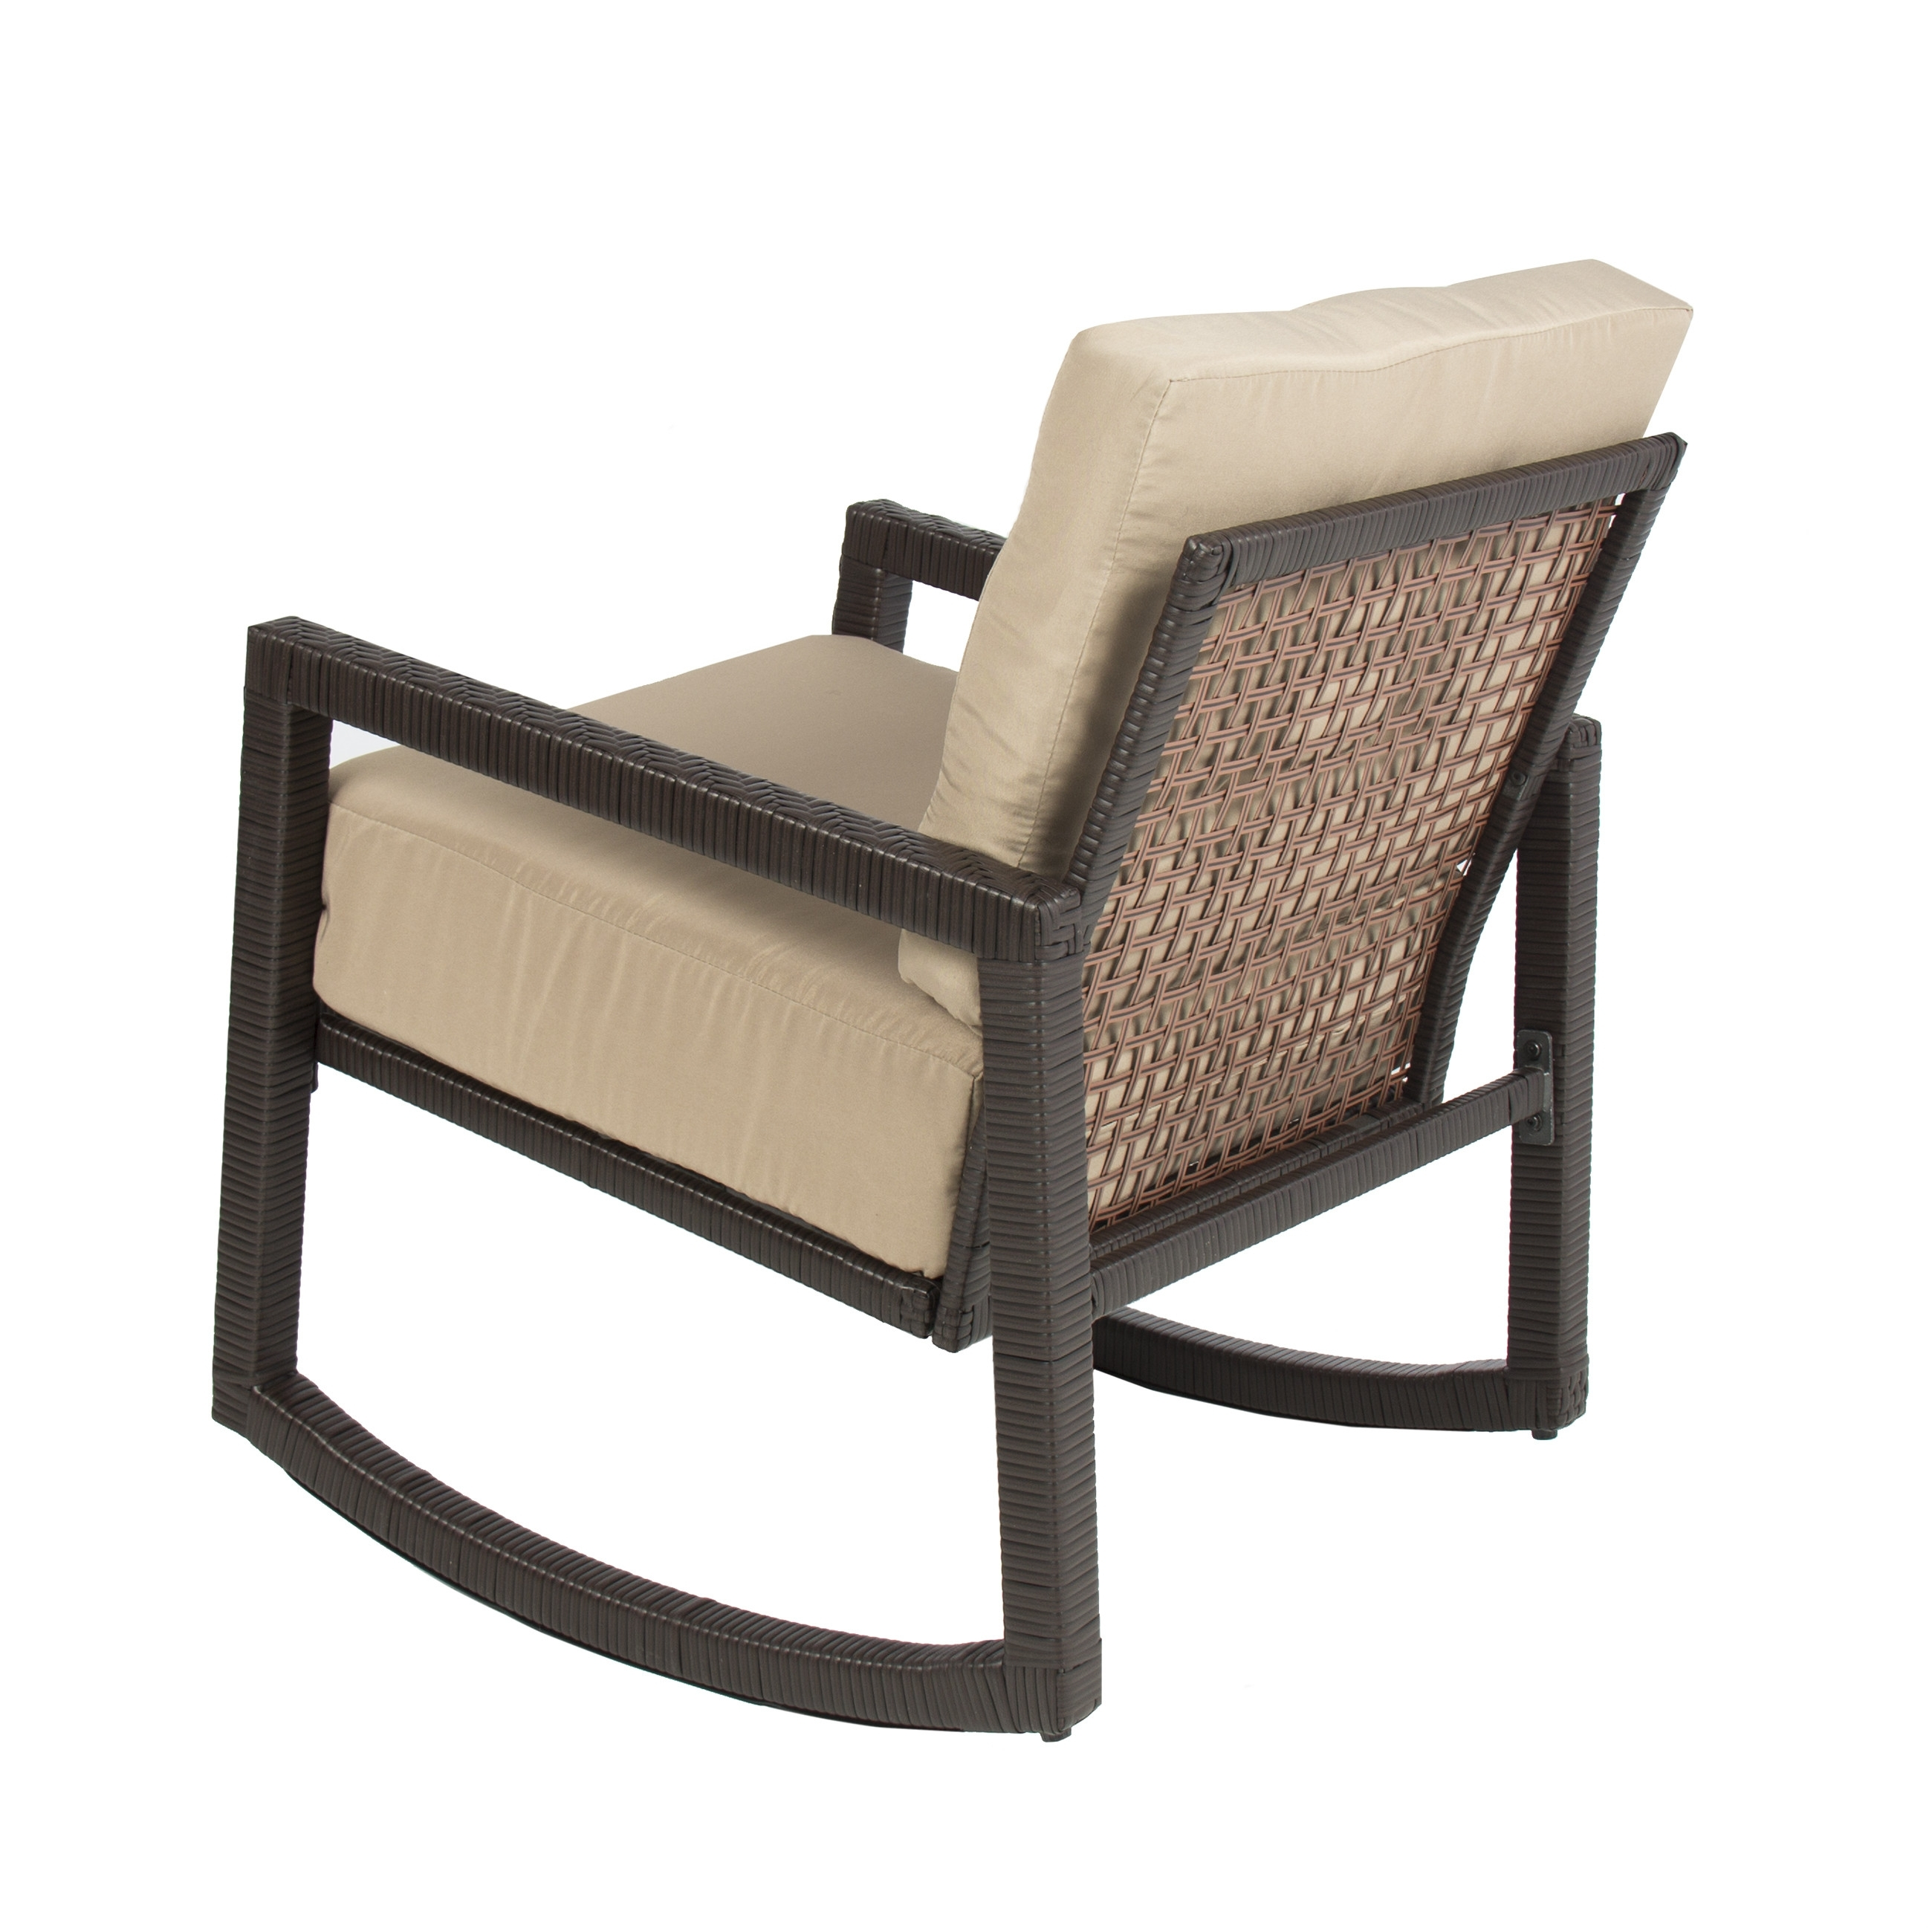 Outdoor Furniture Rocking Chairs Best Of Wicker Chair With Cushion Throughout Current Outdoor Wicker Rocking Chairs With Cushions (View 19 of 20)